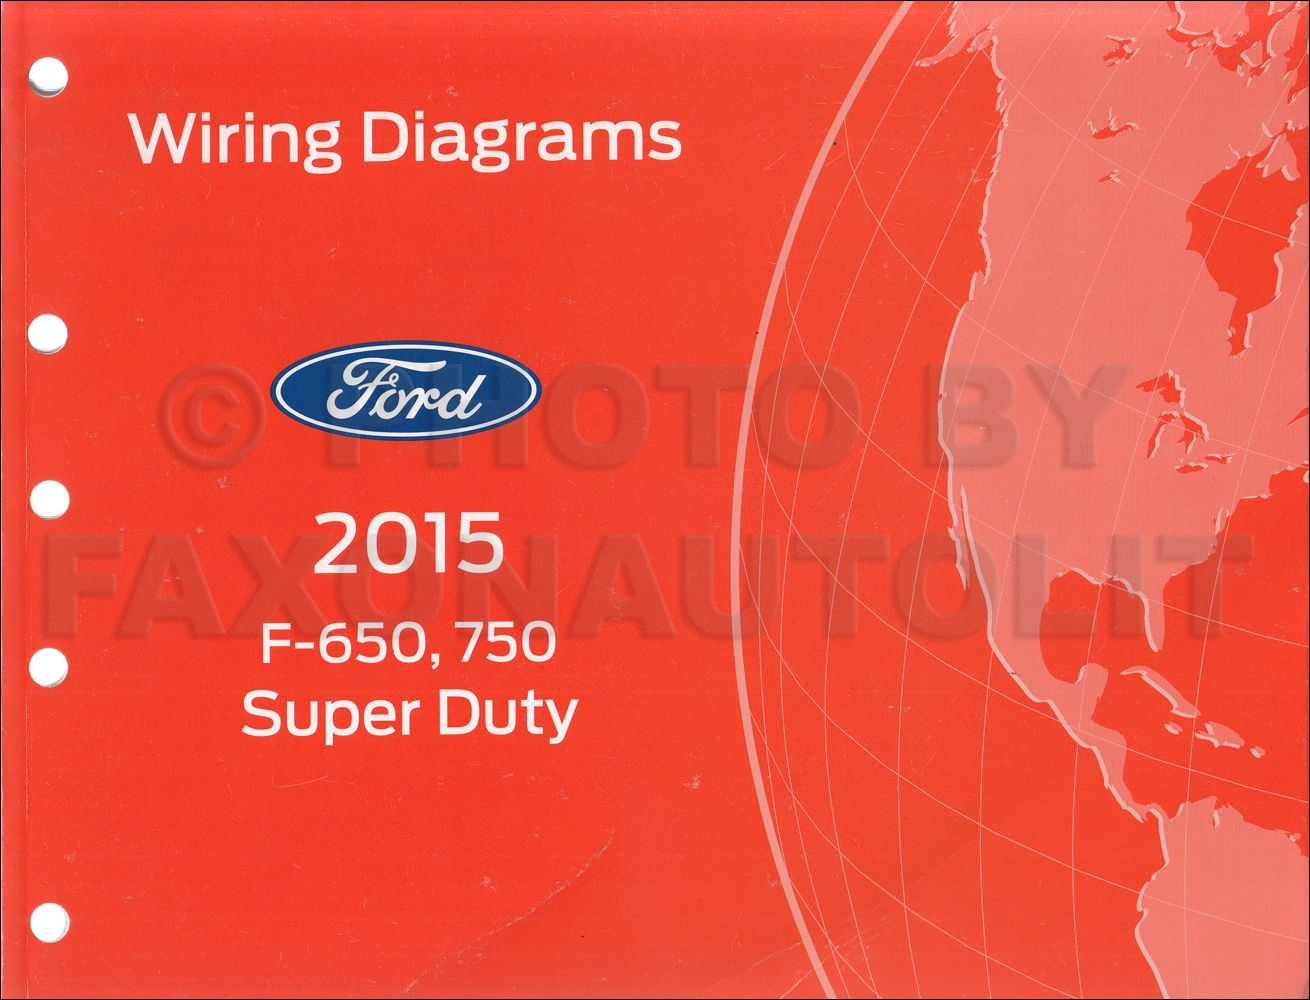 2015 ford f650 / f750 factory wiring diagram